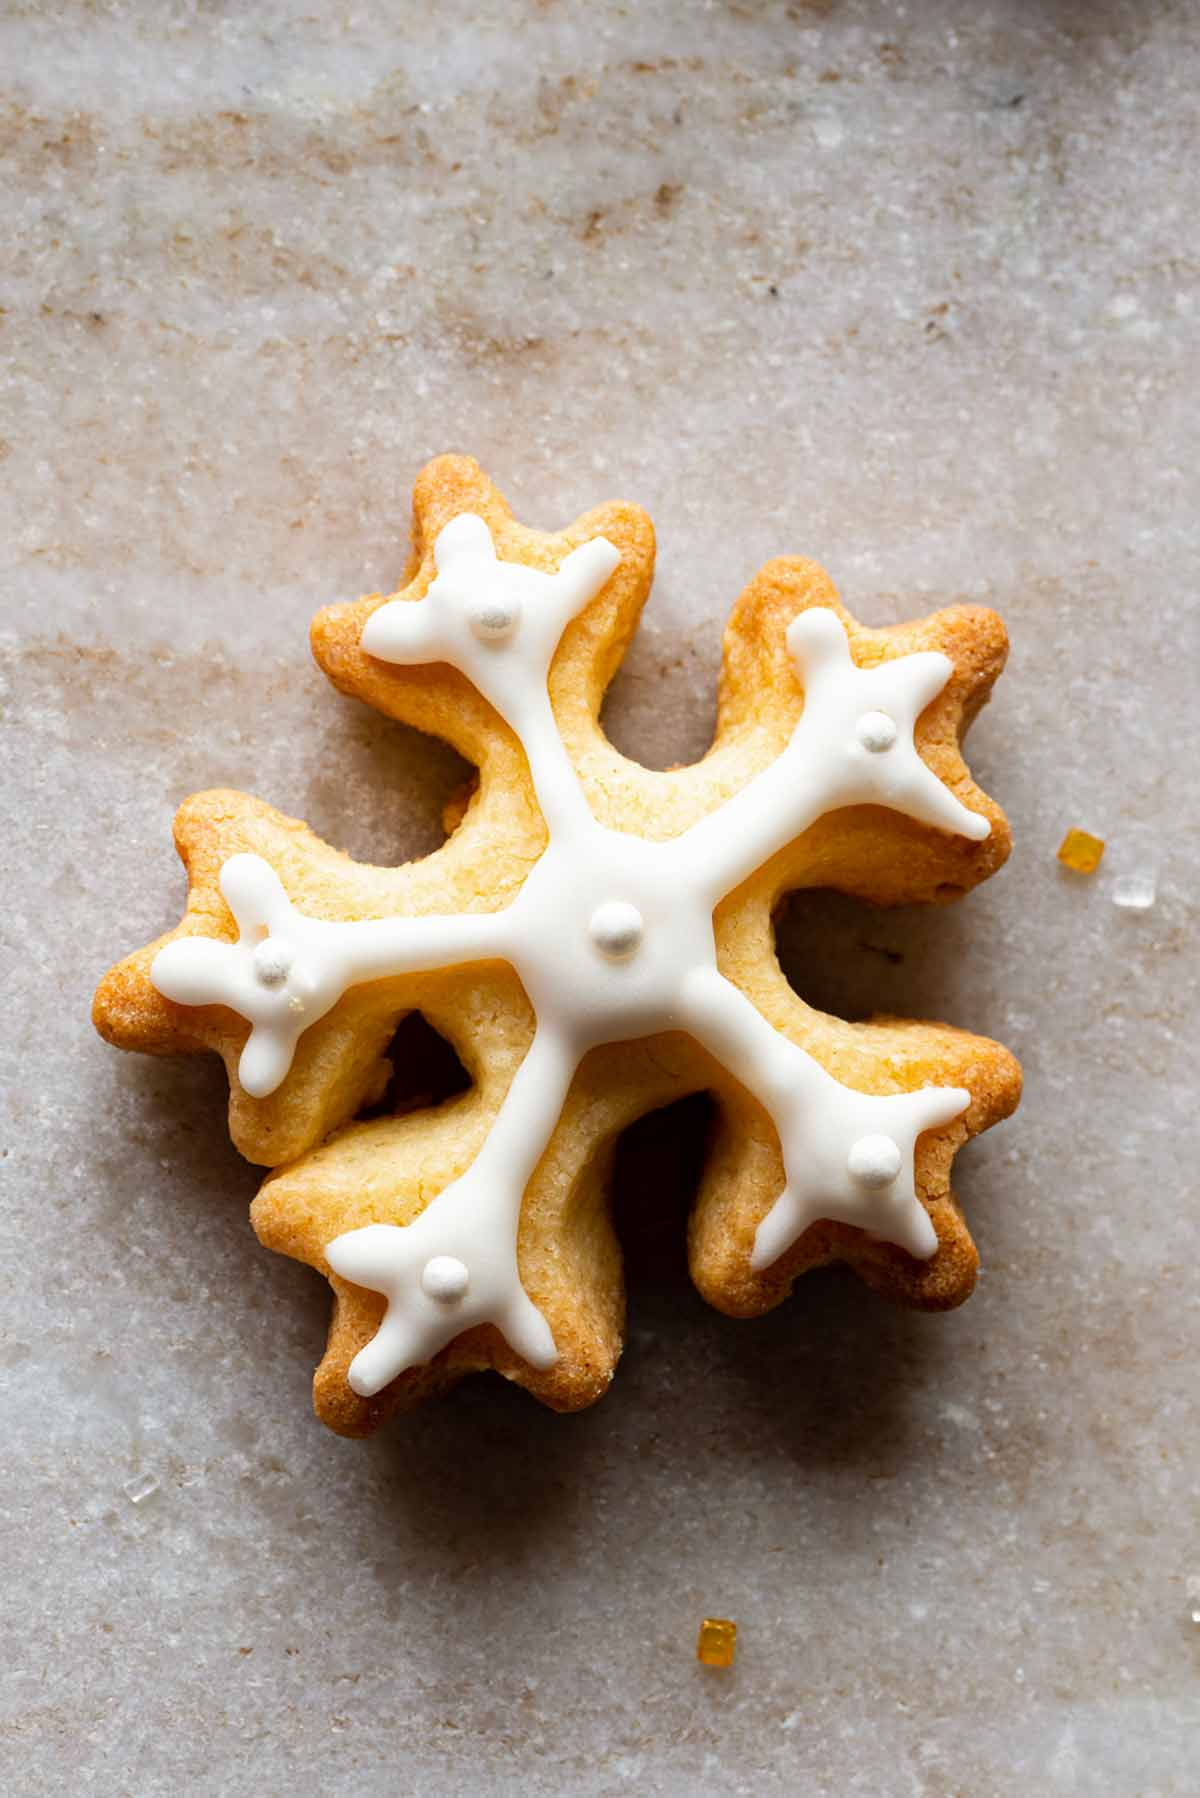 A snowflake cookies frosted with royal icing on a granite background